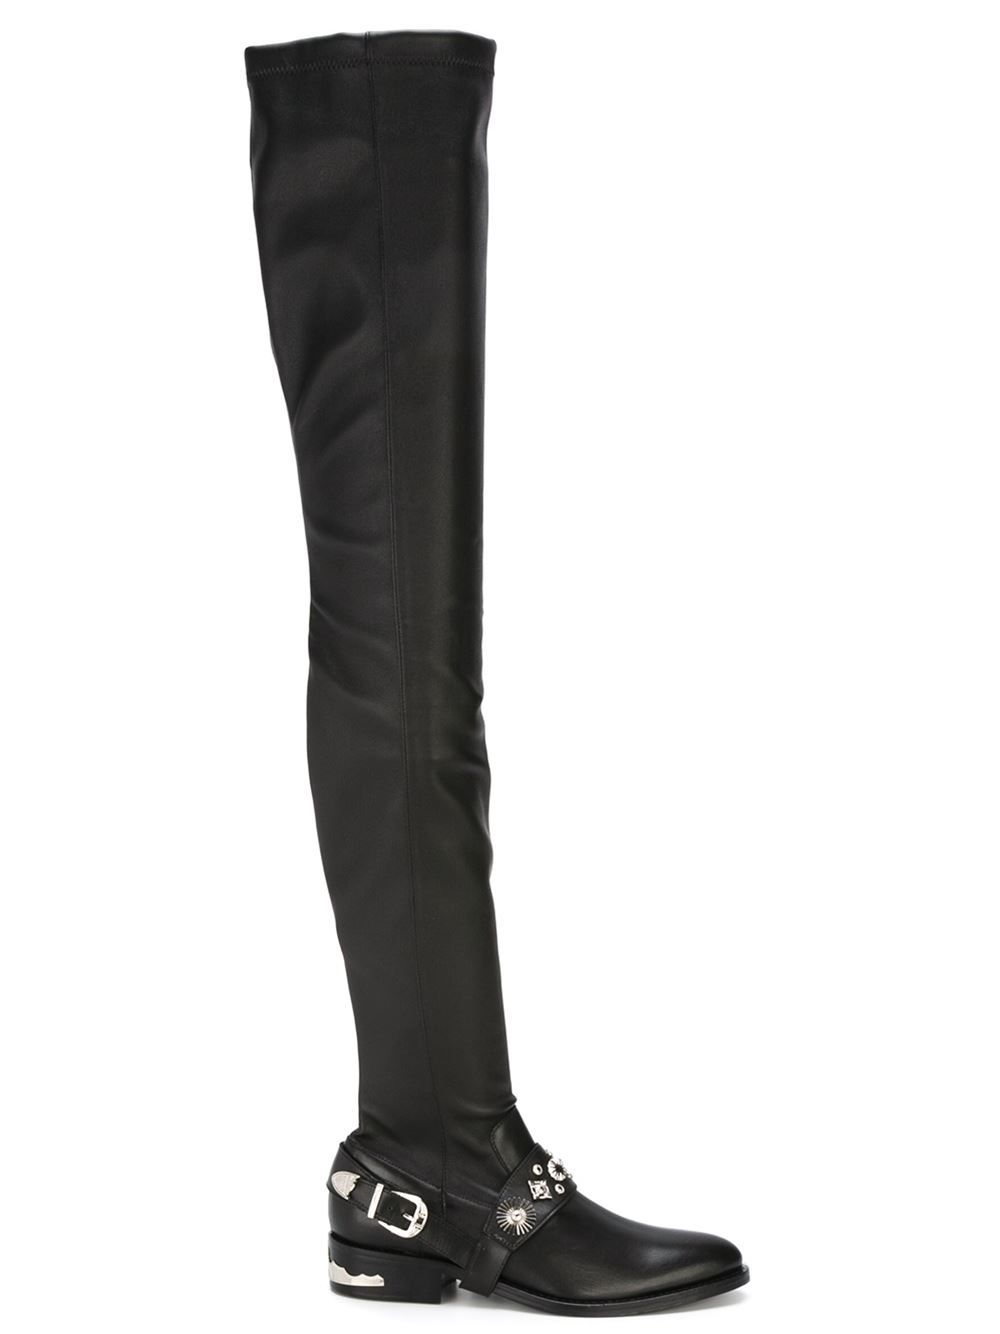 cheap sale shop for Toga thigh high boots new arrival for sale 9j8cpI1r2U